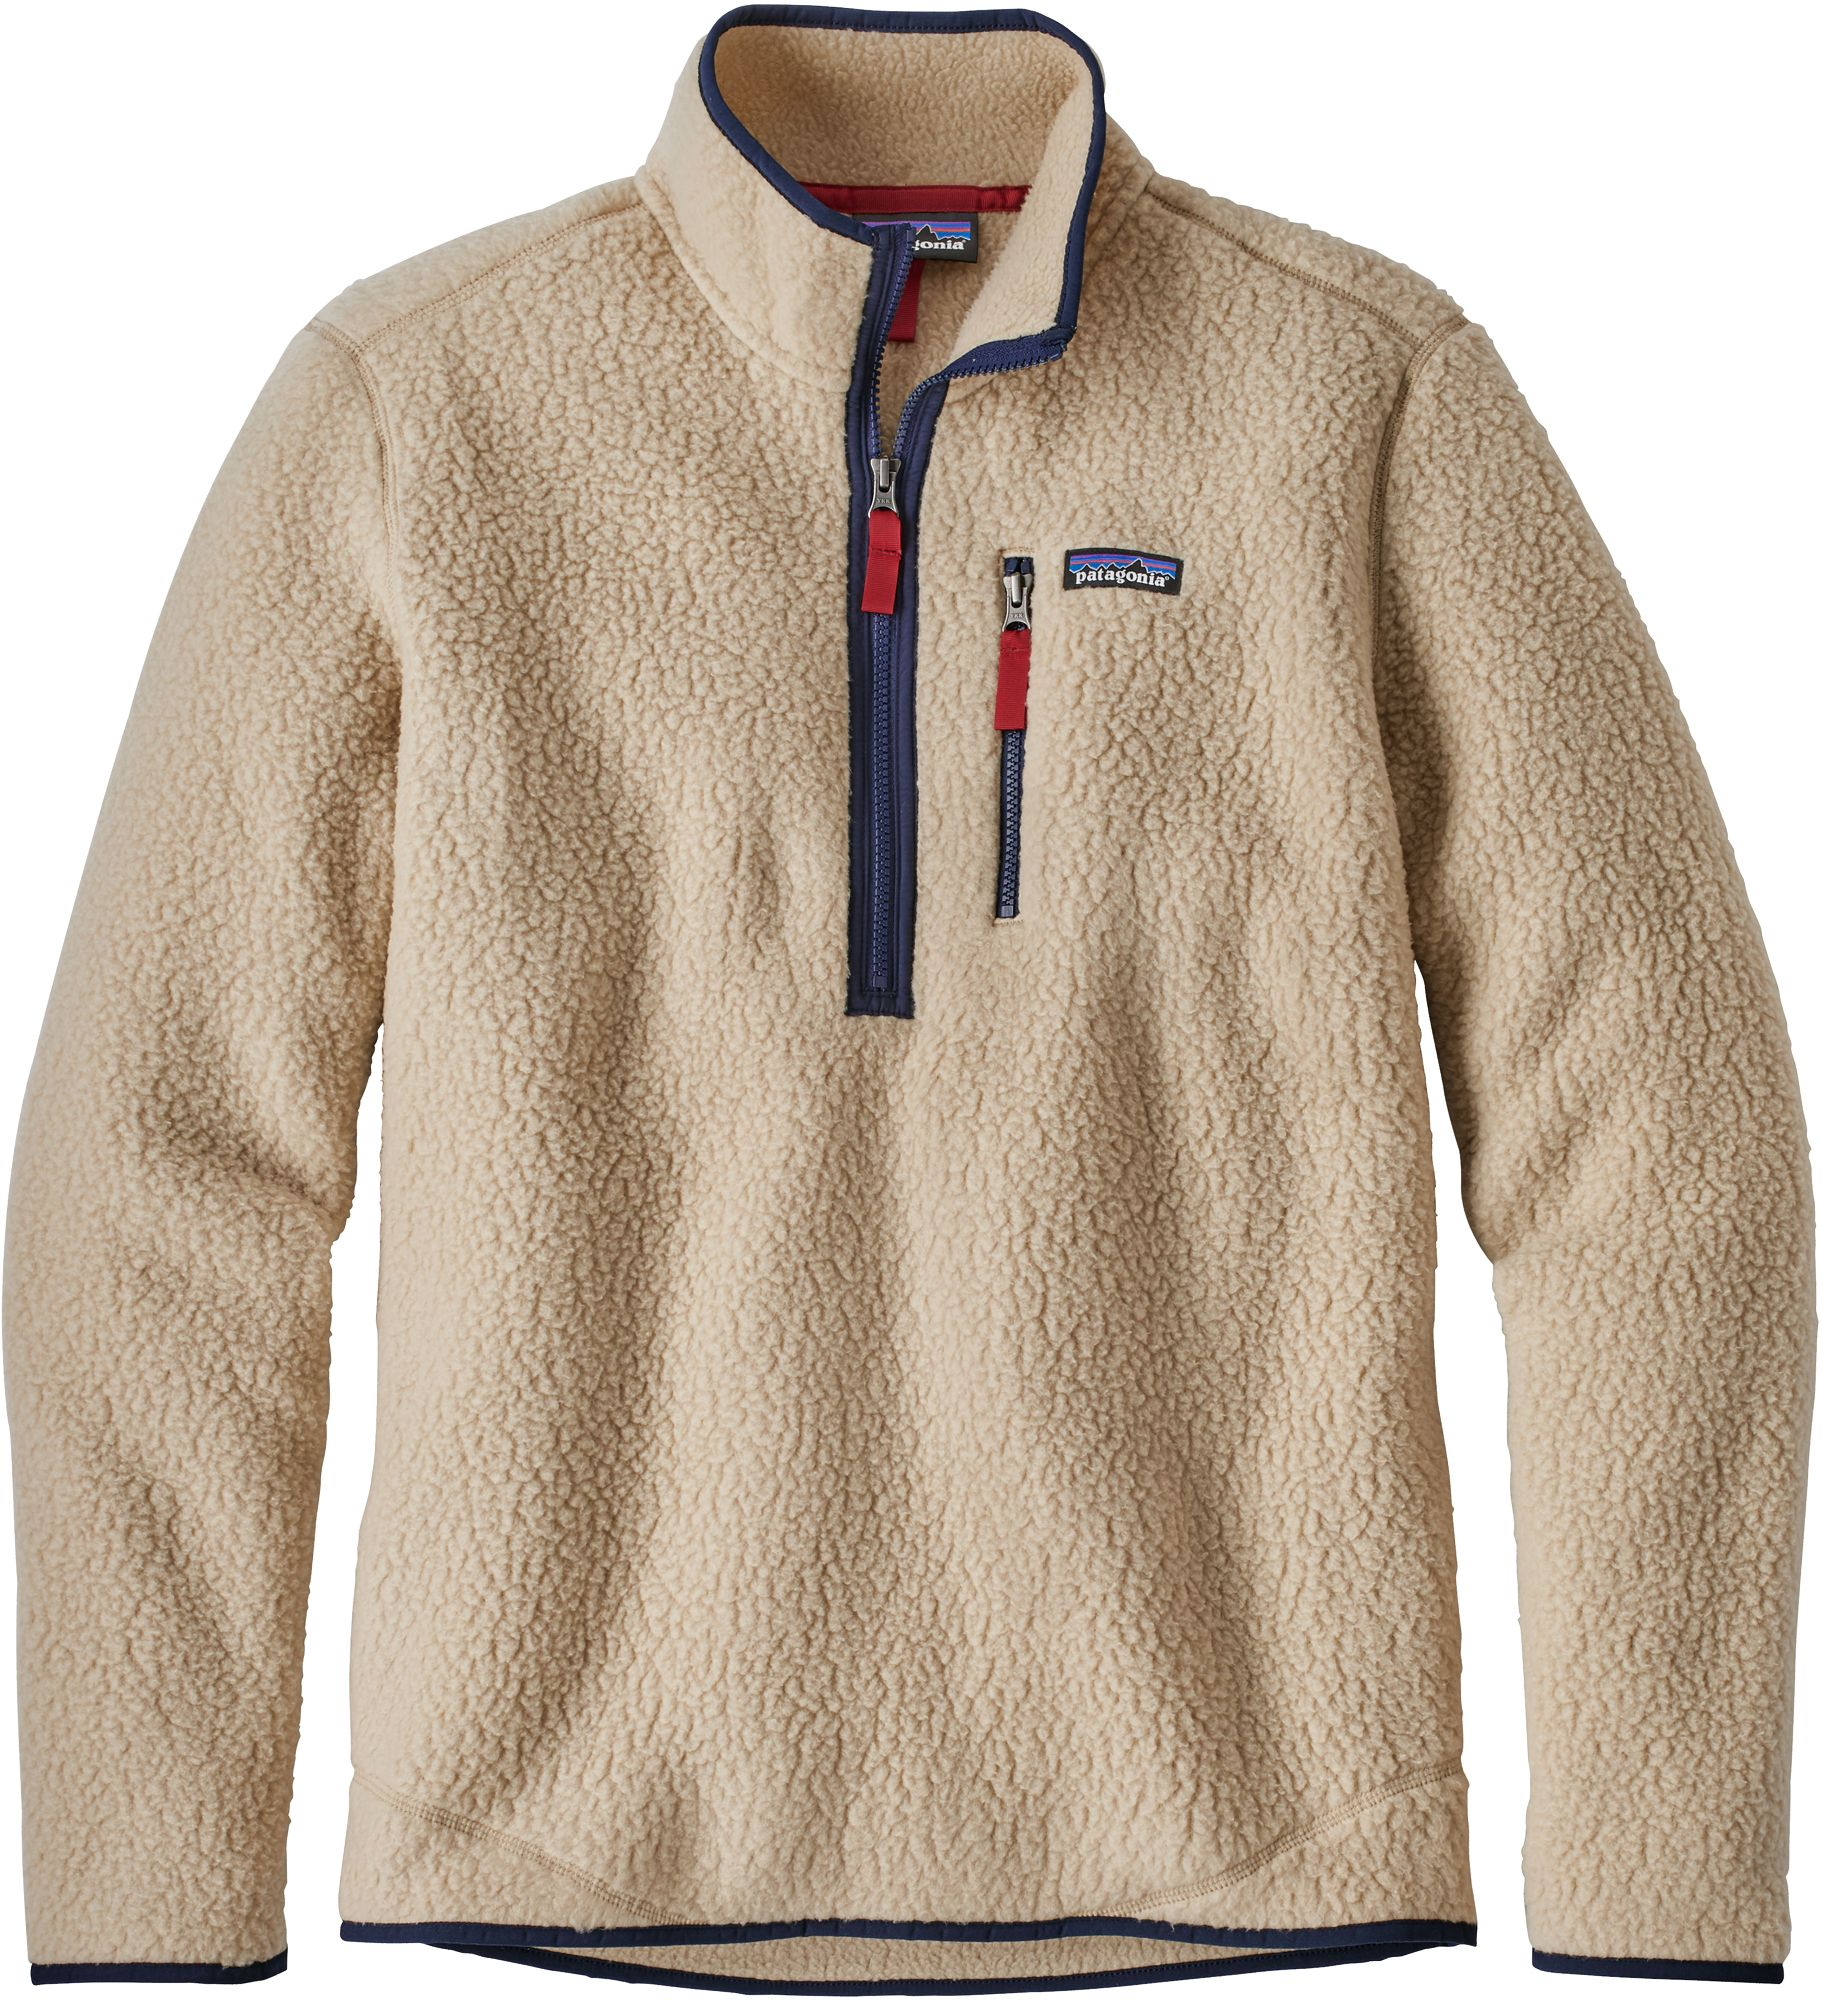 Patagonia Men's Retro Pile Fleece Pullover | DICK'S Sporting Goods